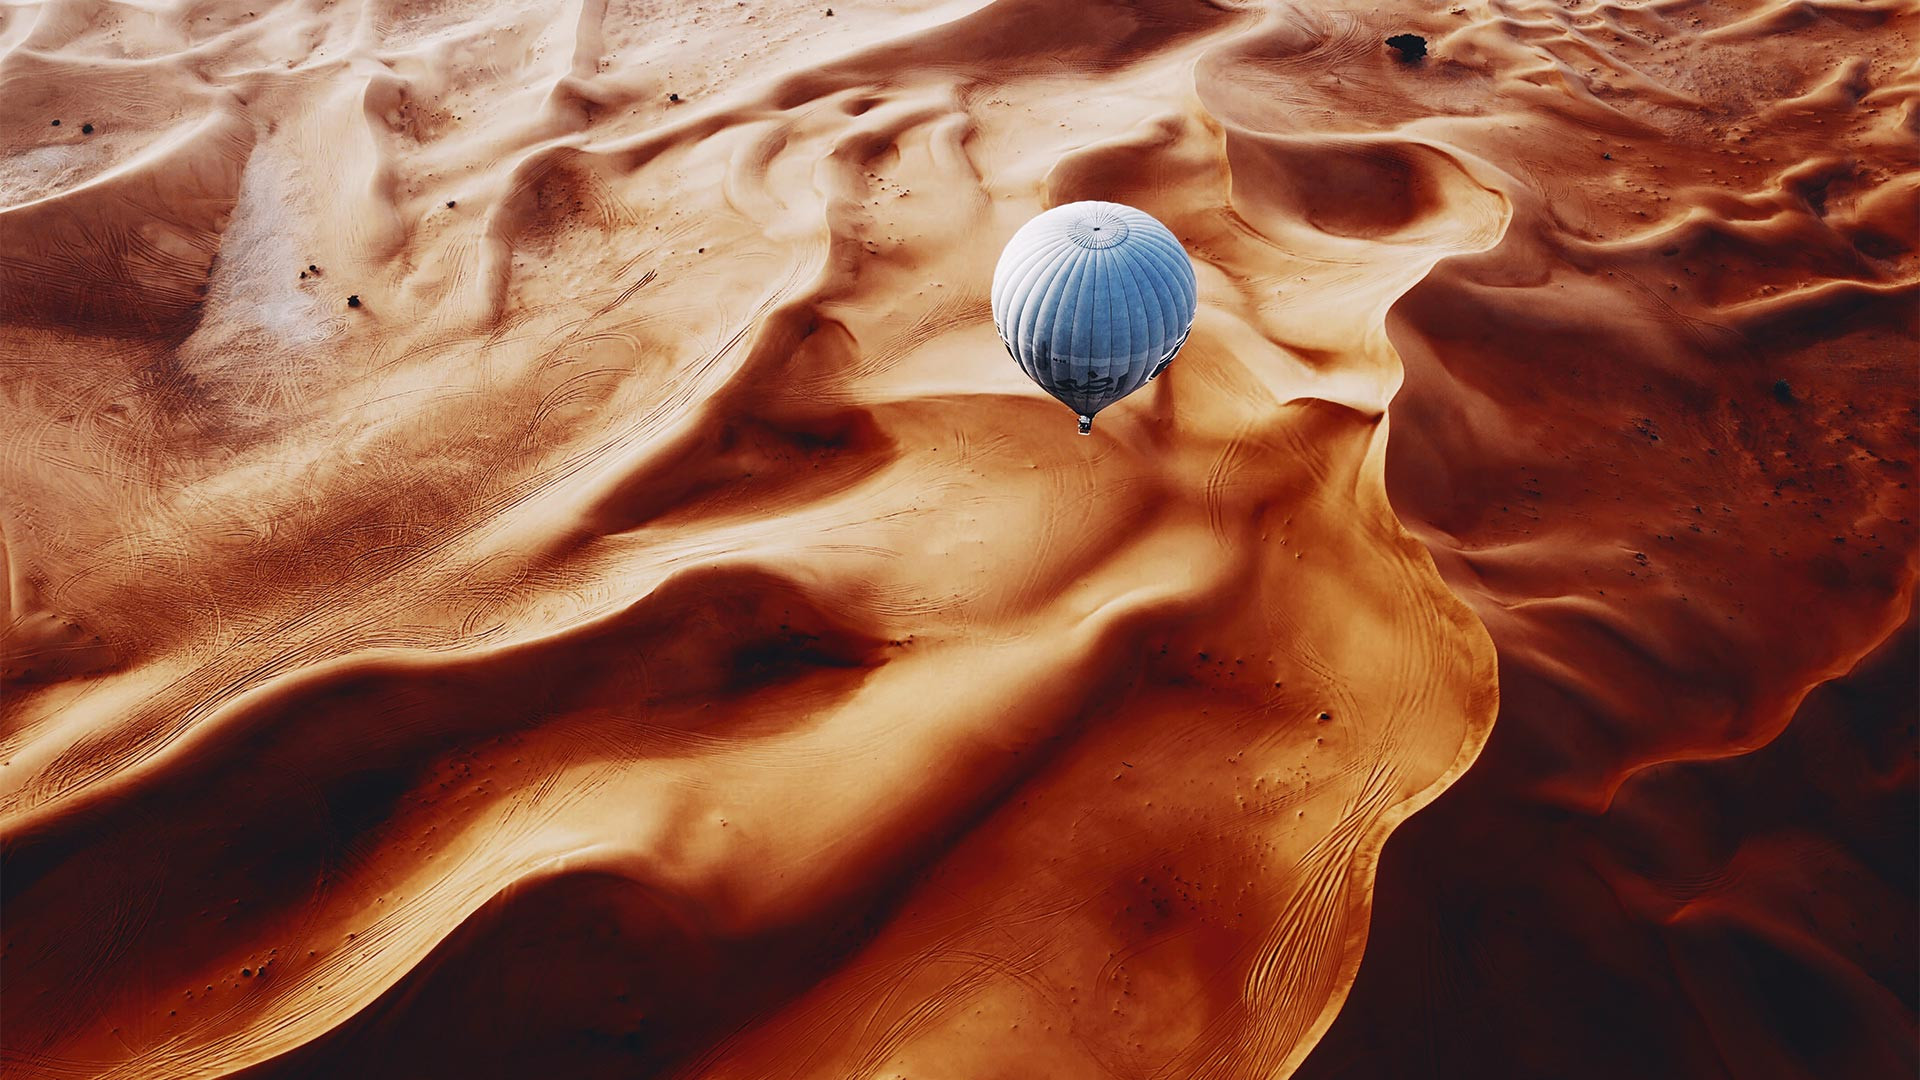 Hot air ballooning in the Dubai desert